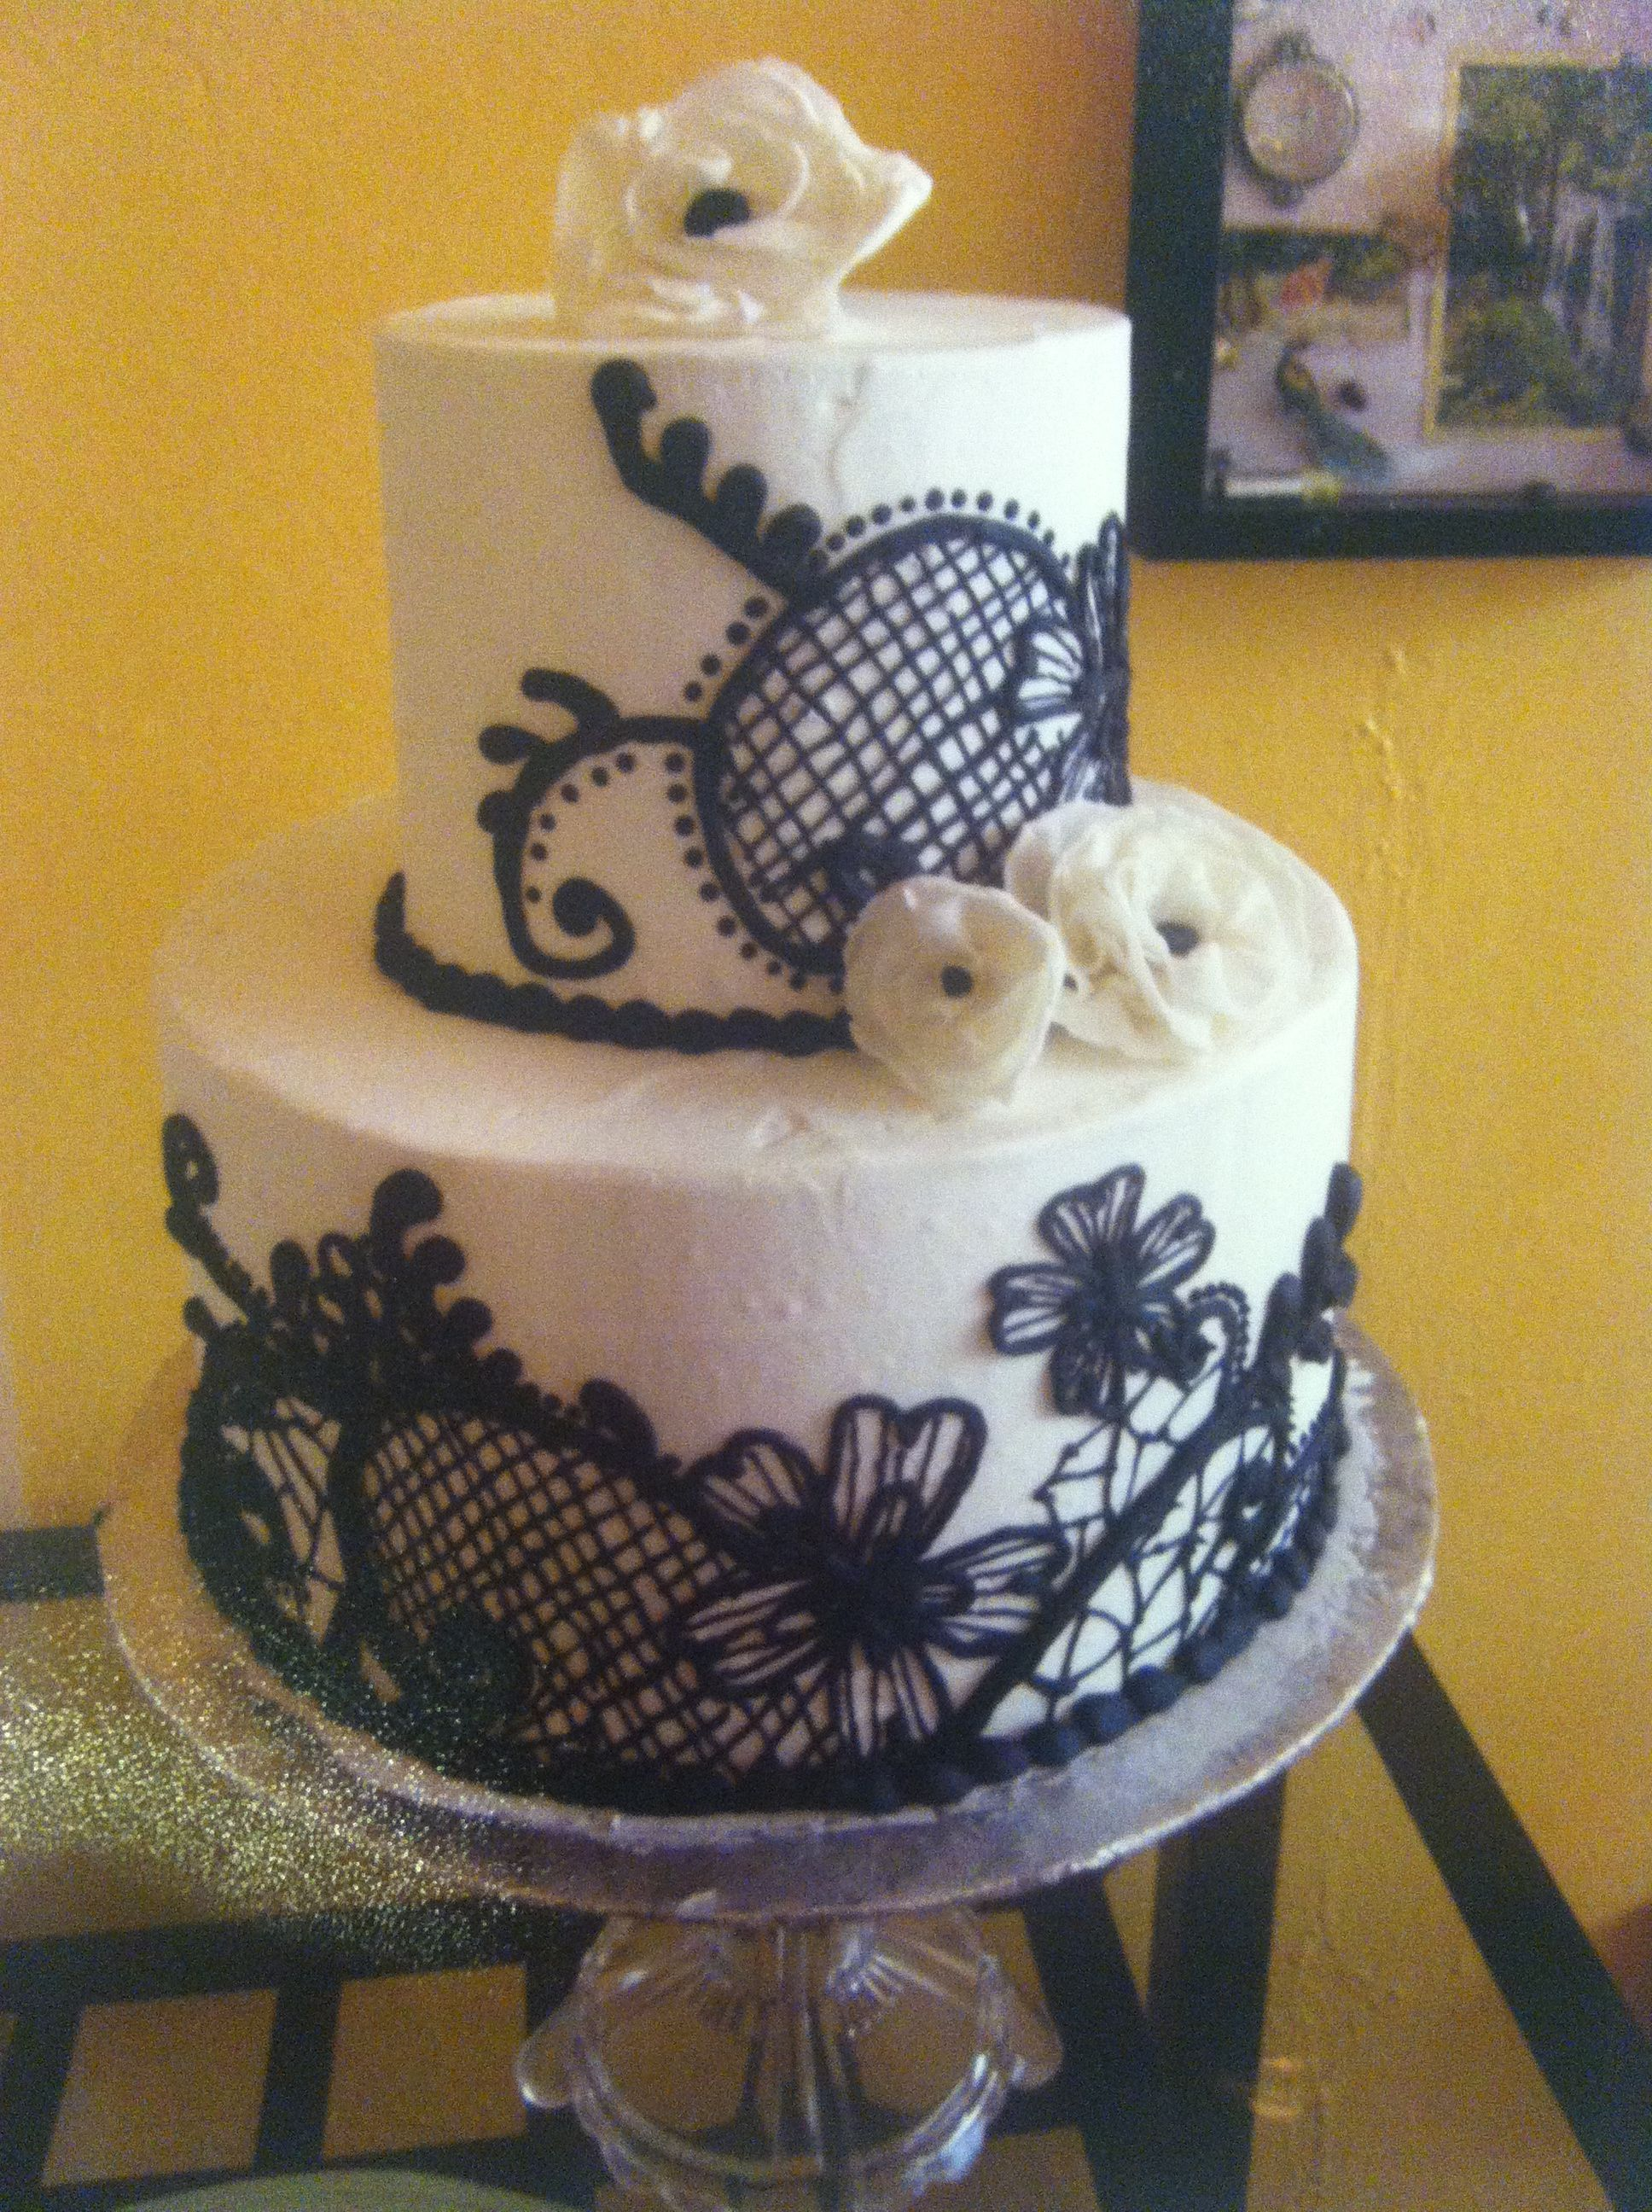 White buttercream cake with black lace and scroll piping with free white buttercream cake with black lace and scroll piping with free form white sugar flowers dhlflorist Image collections